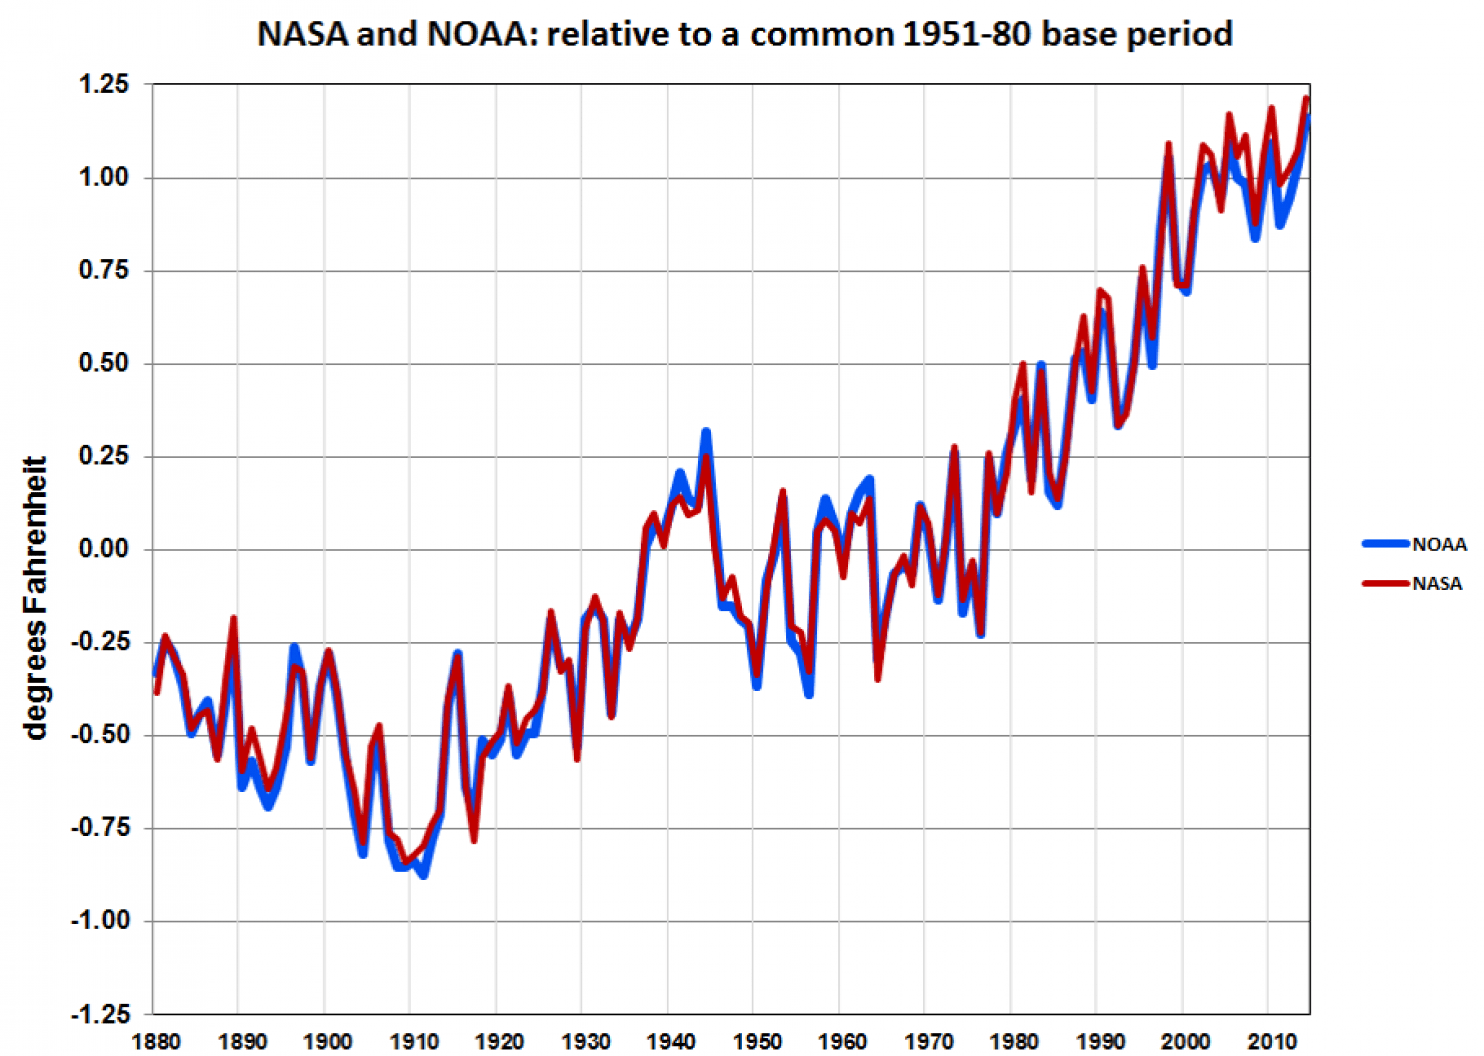 Is S Record Average Temperature Evidence That We Are Now Experiencing Runaway Climate